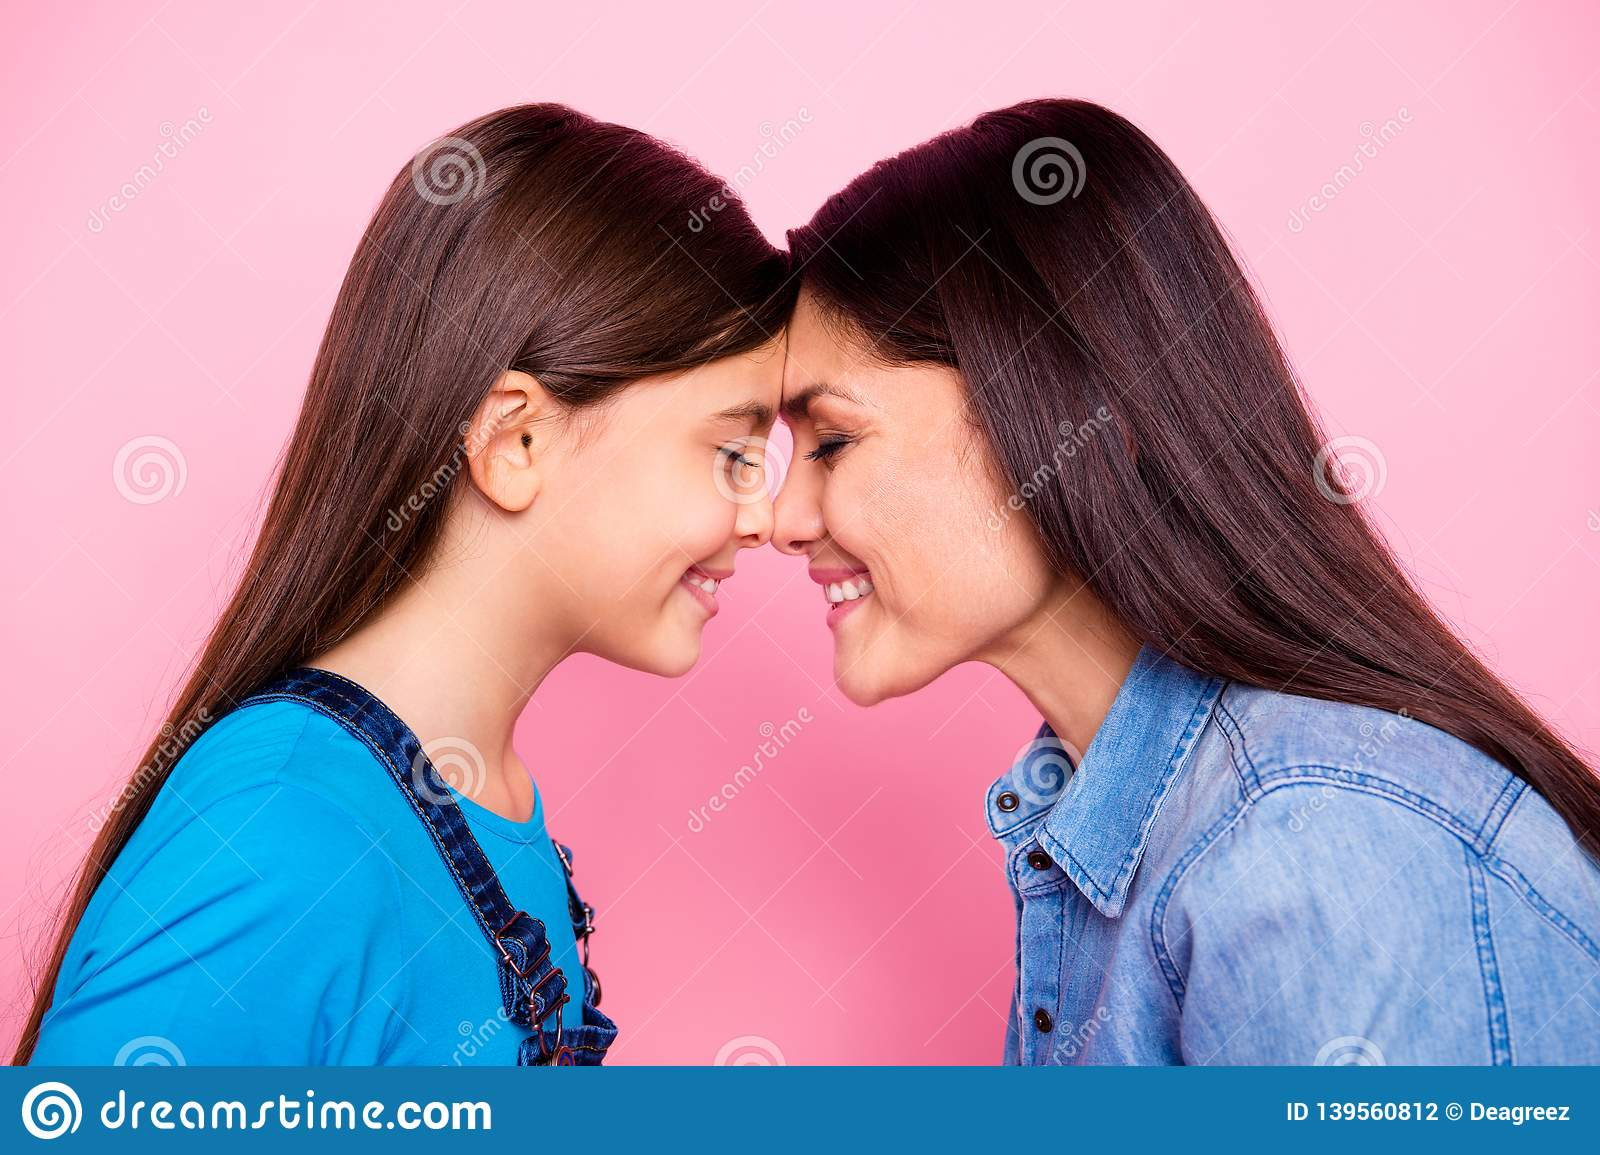 154 Pretty Girls Side Profile Face Photos Free Royalty Free Stock Photos From Dreamstime